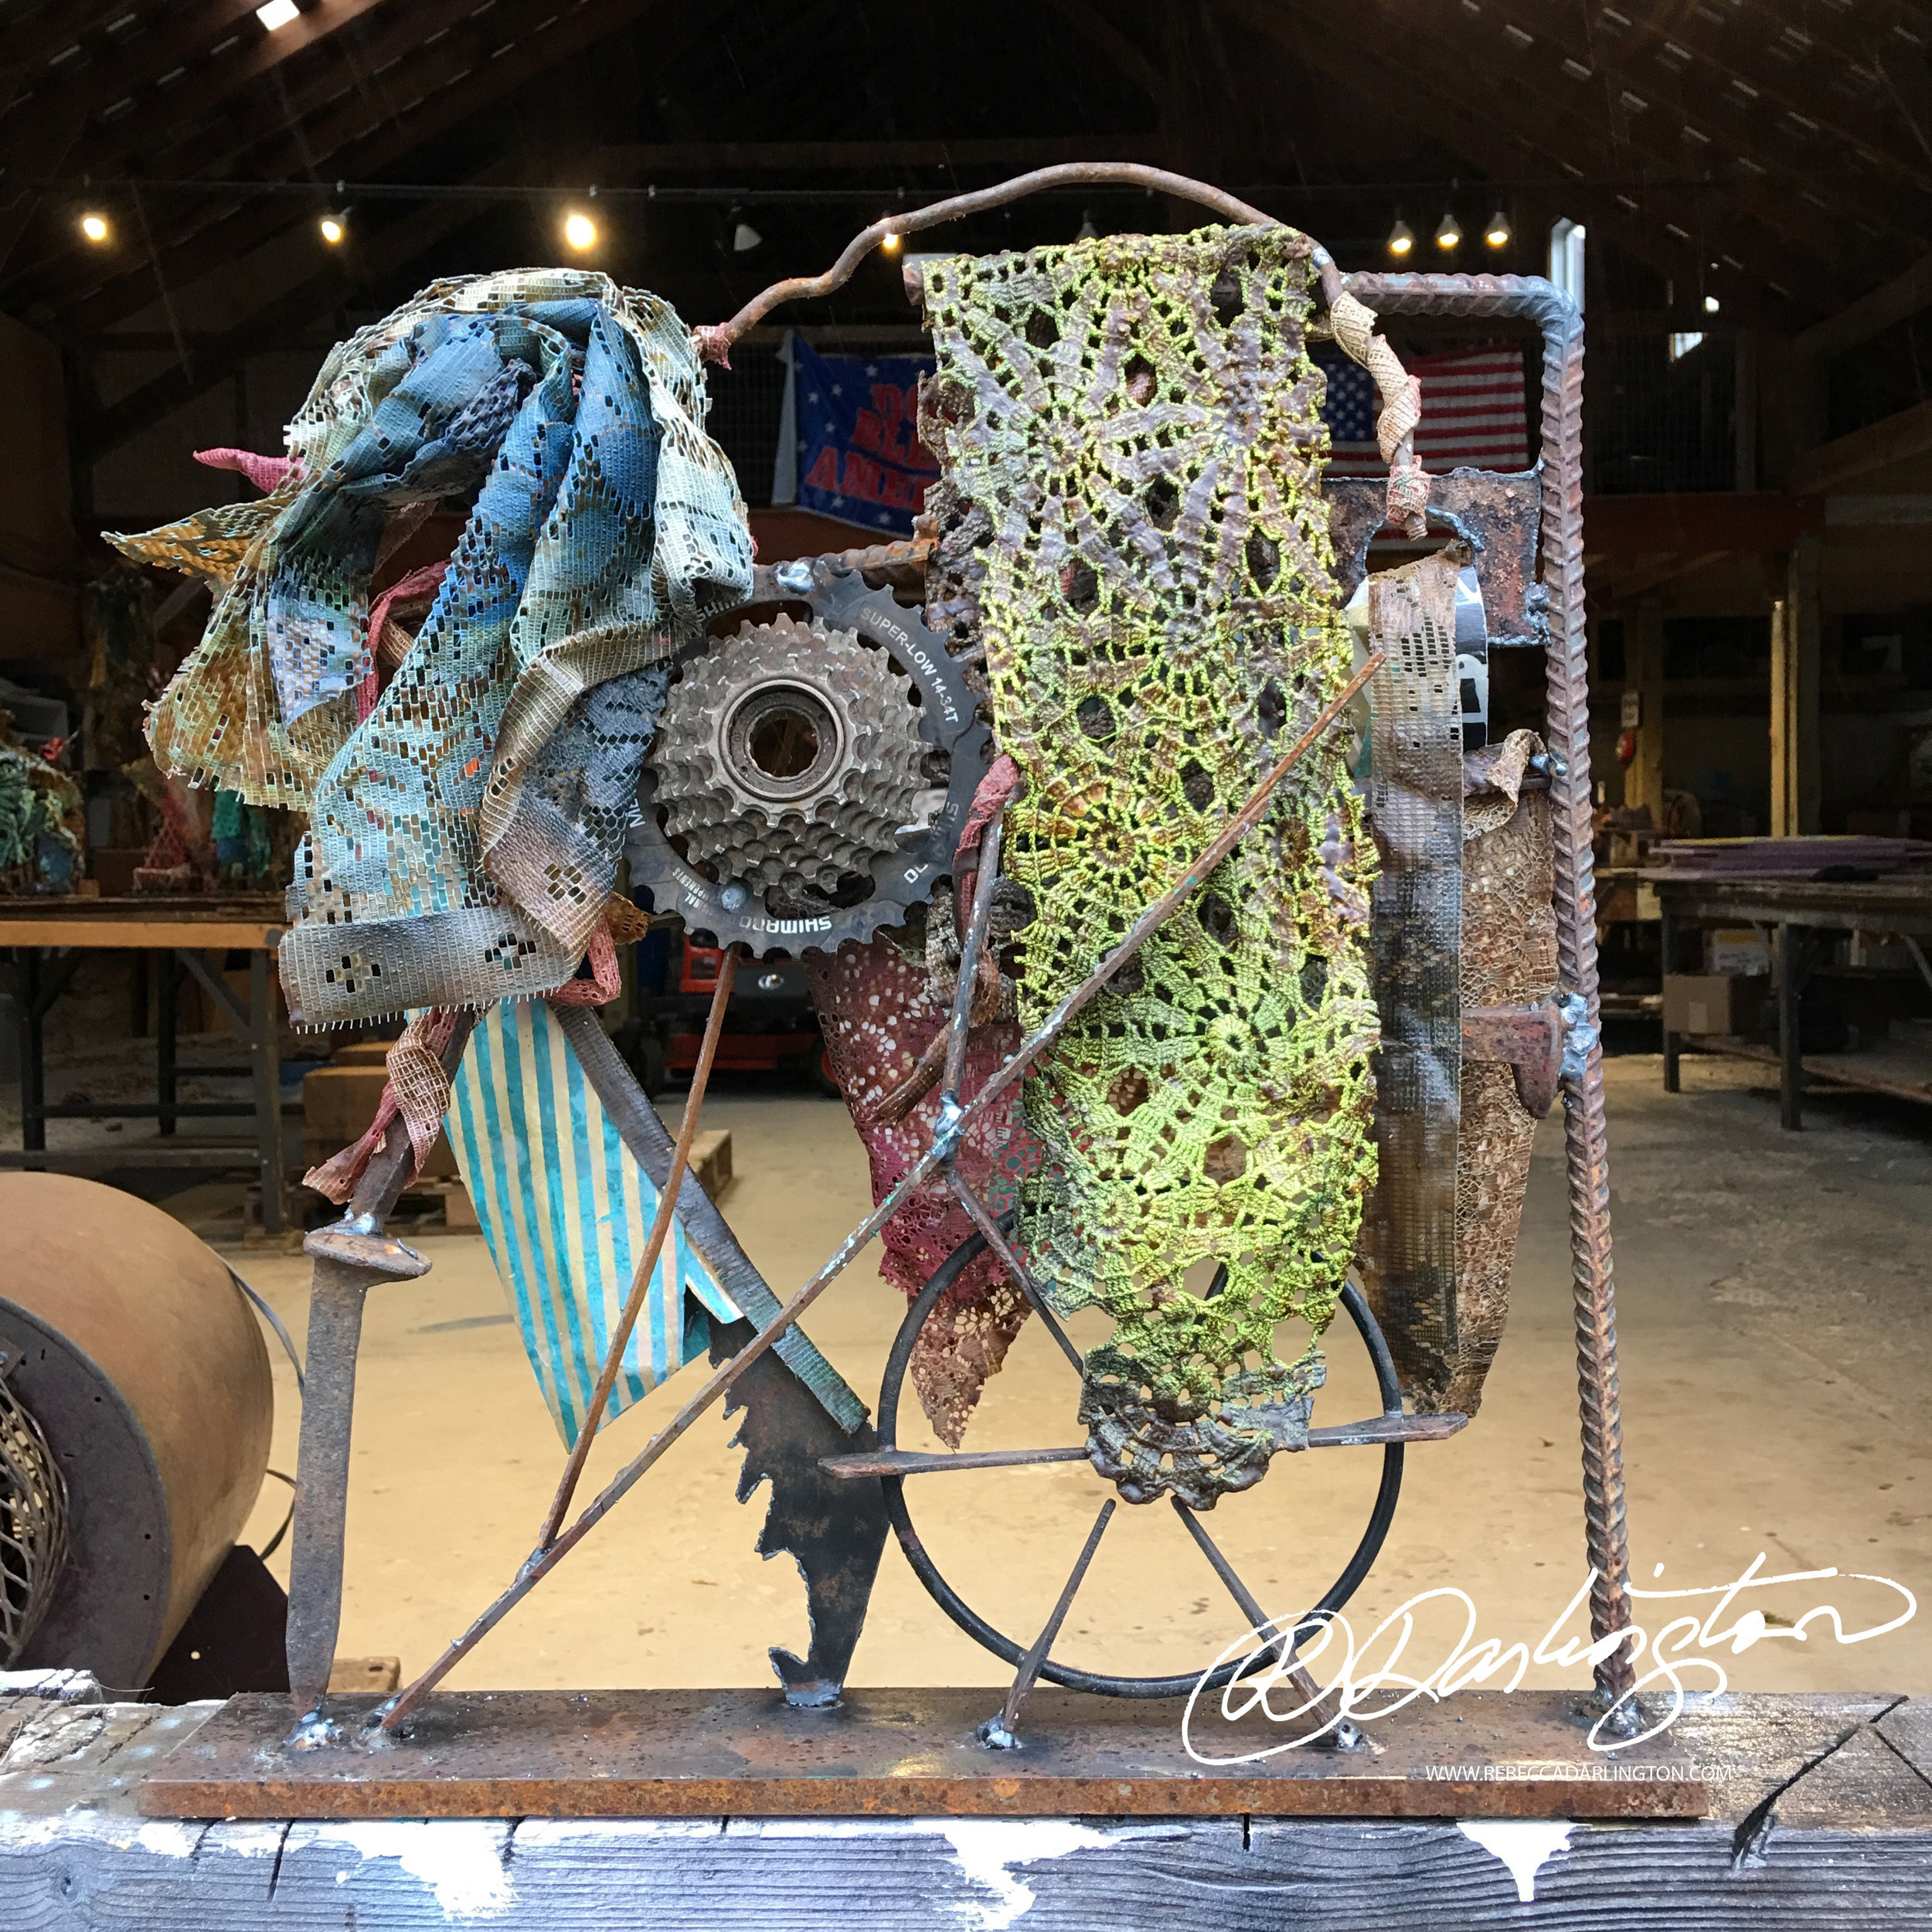 Artist with Environment Showing Art in Gallery Event at Museum this Weekend